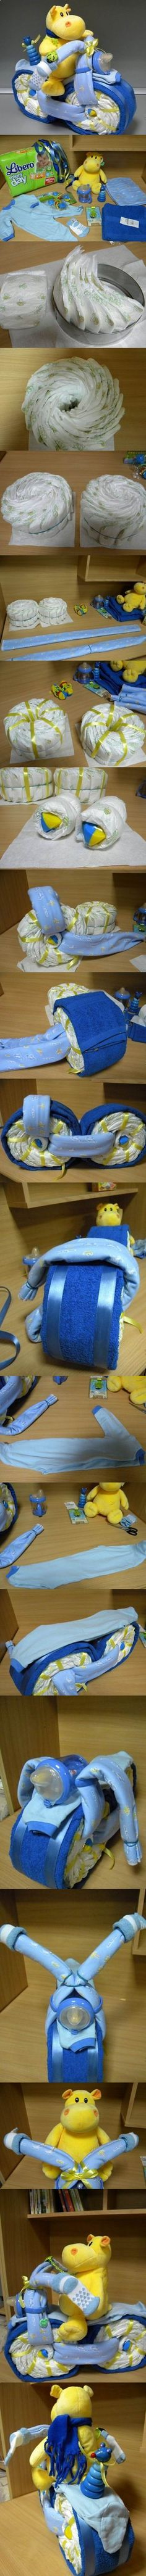 DIY Hippo on the Bike Diaper Gift | iCreativeIdeas.com LIKE Us on Facebook ==> https://www.facebook.com/icreativeideas